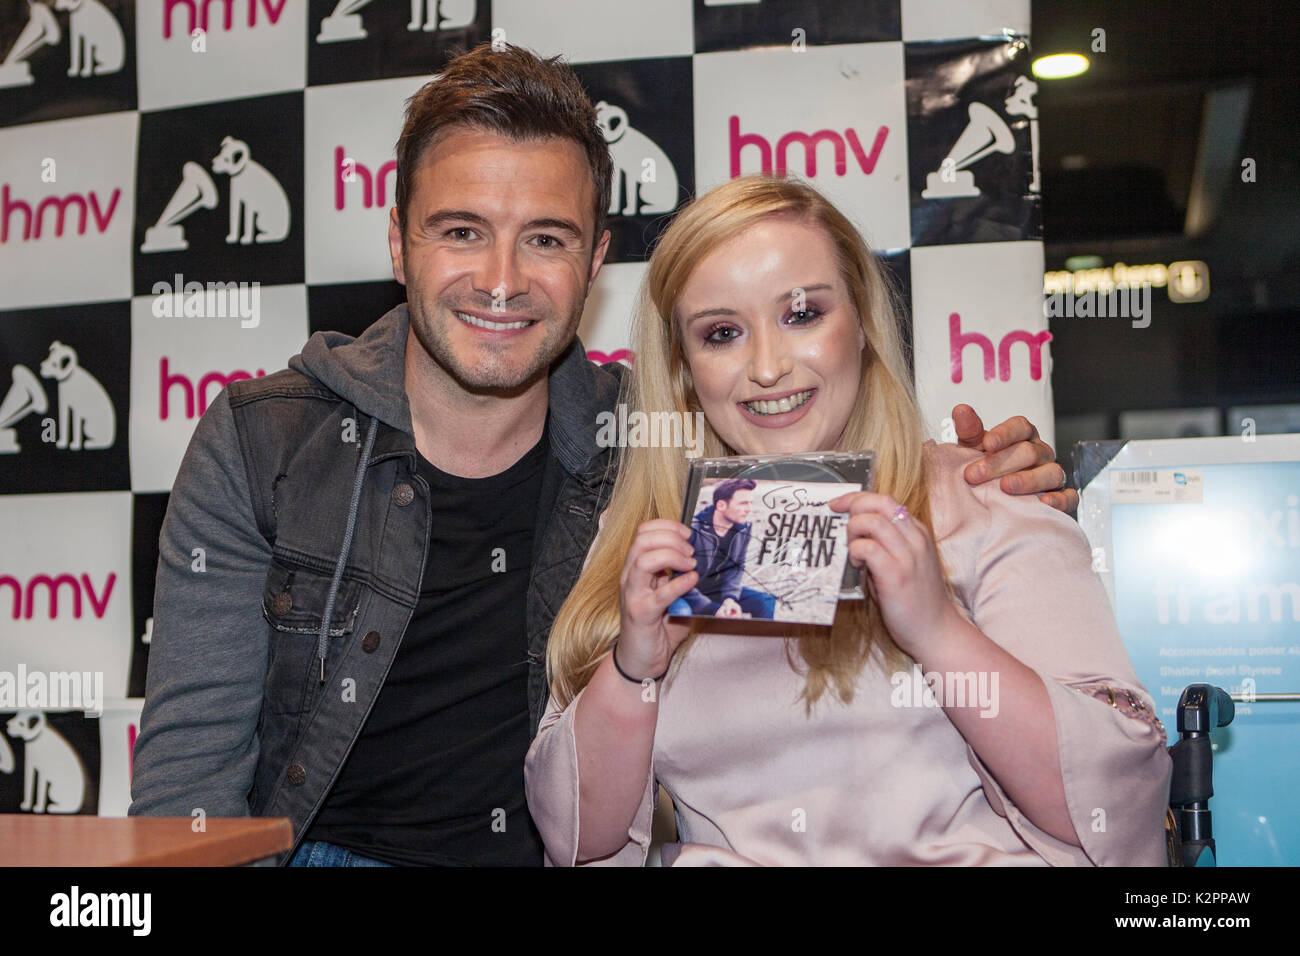 HMV Shop, High Street, Belfast, Northern Ireland  31st August 2017